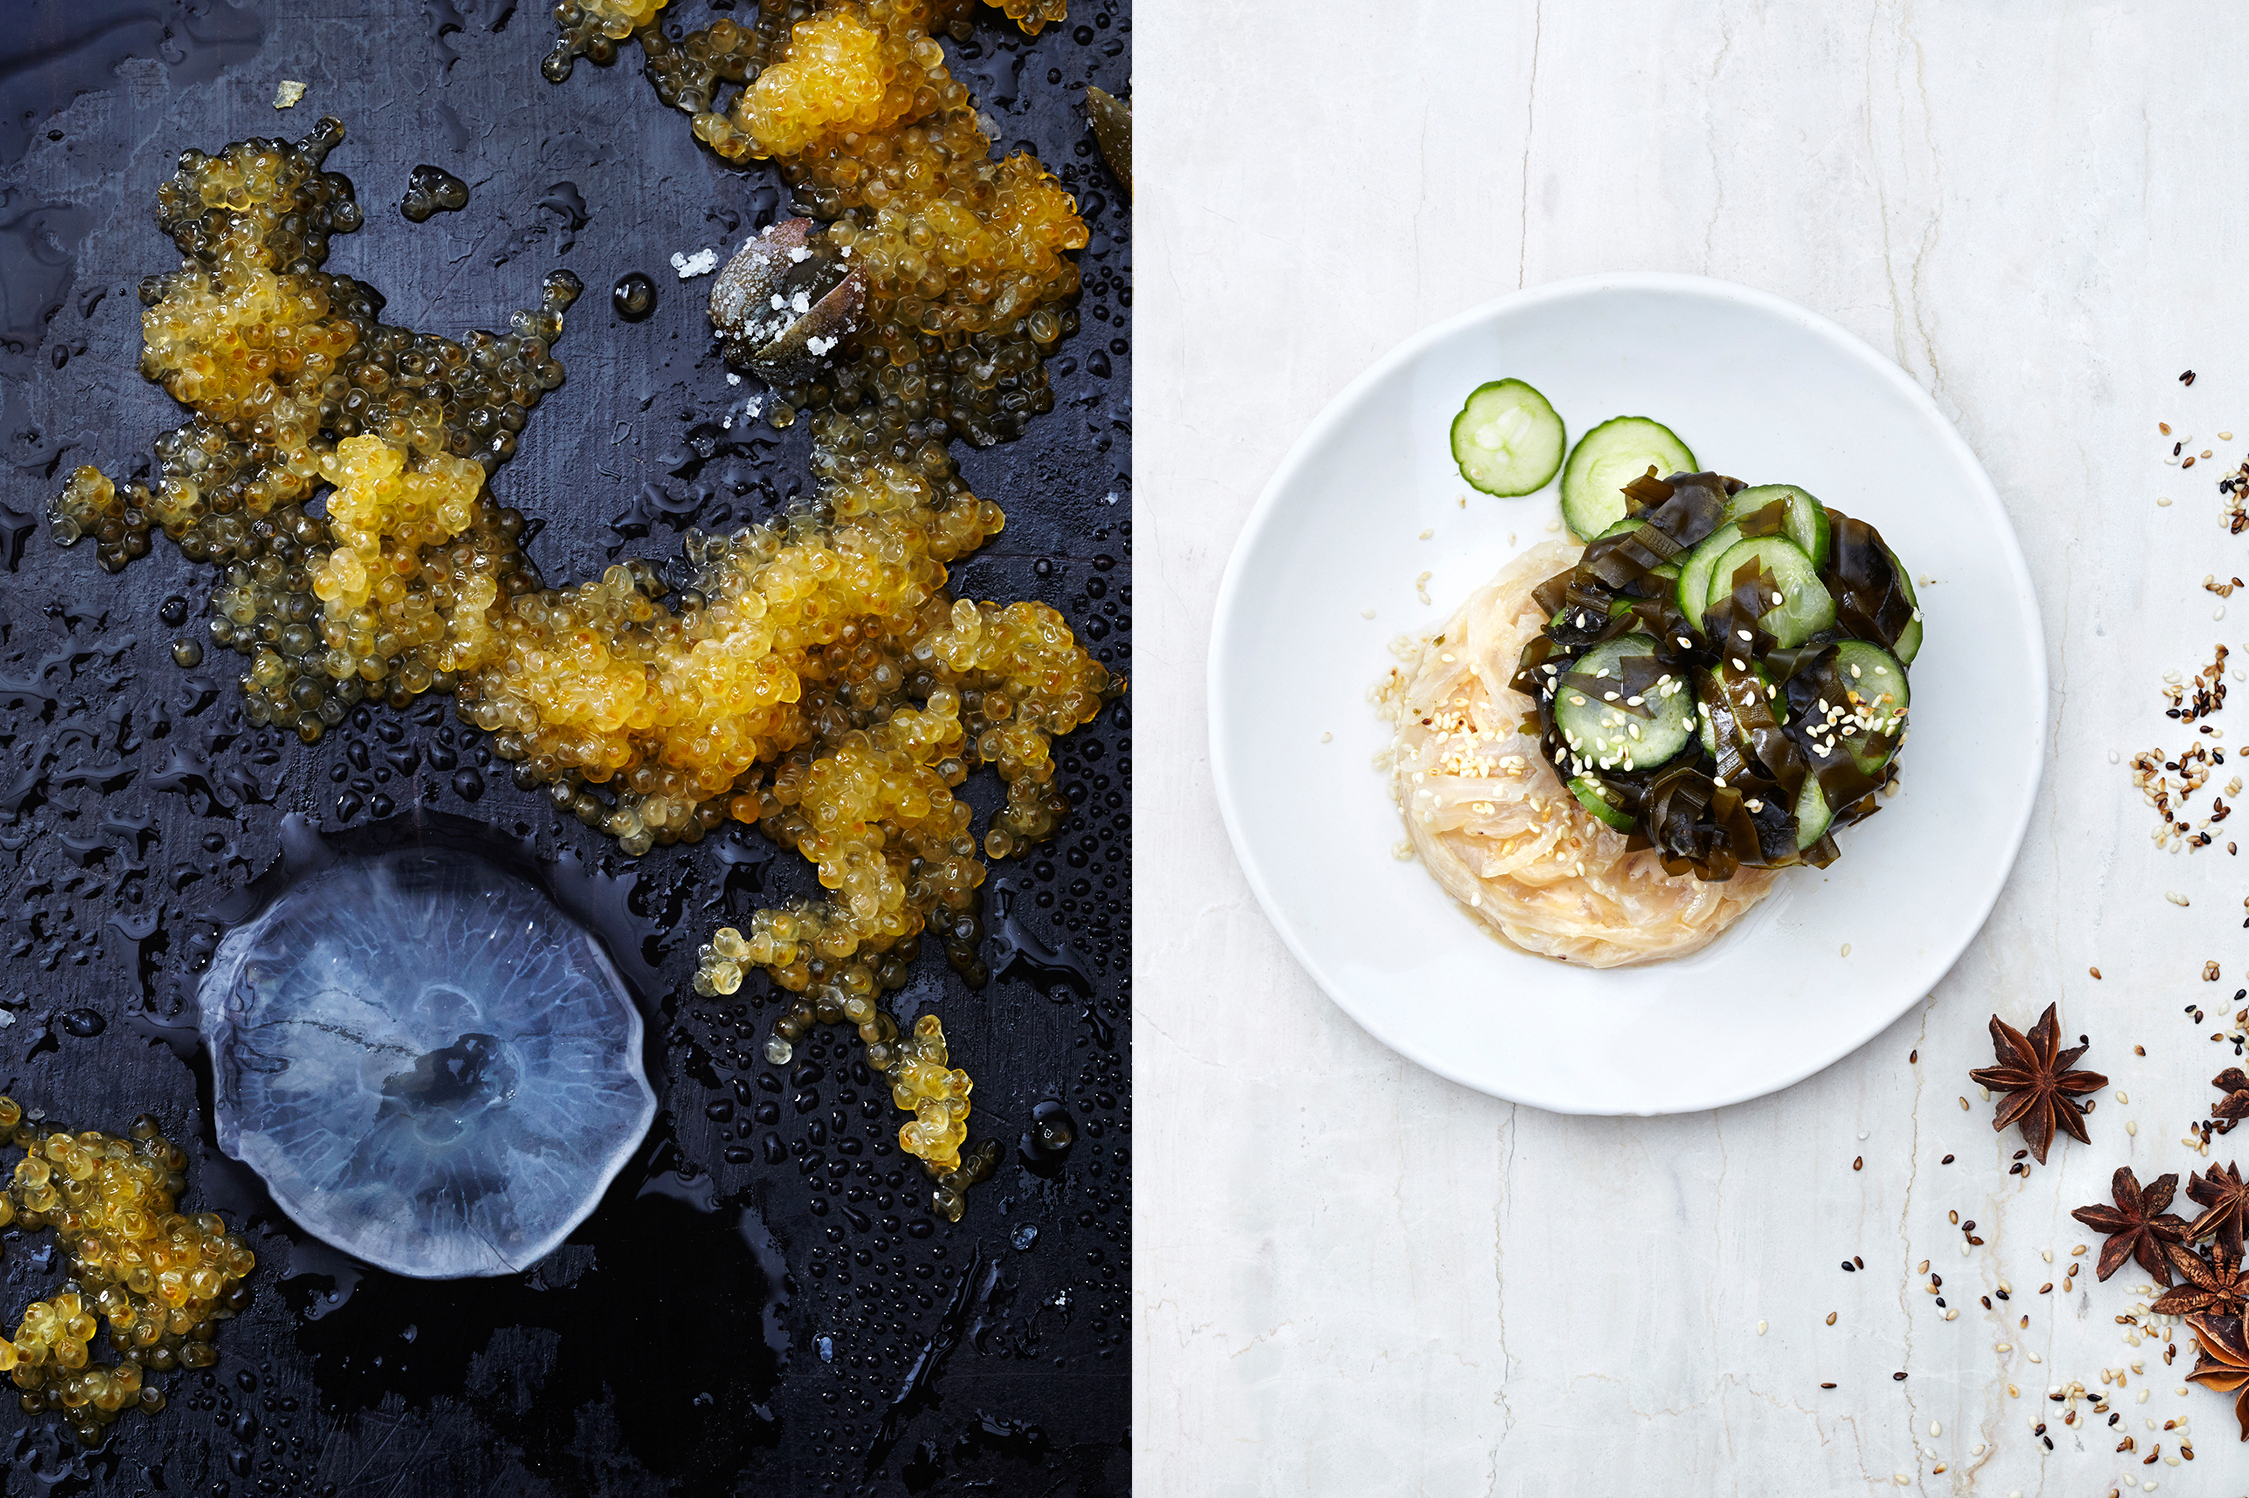 Left, jellyfish. Right, peanut butter, jellyfish, wakame and salted cucumber salad.